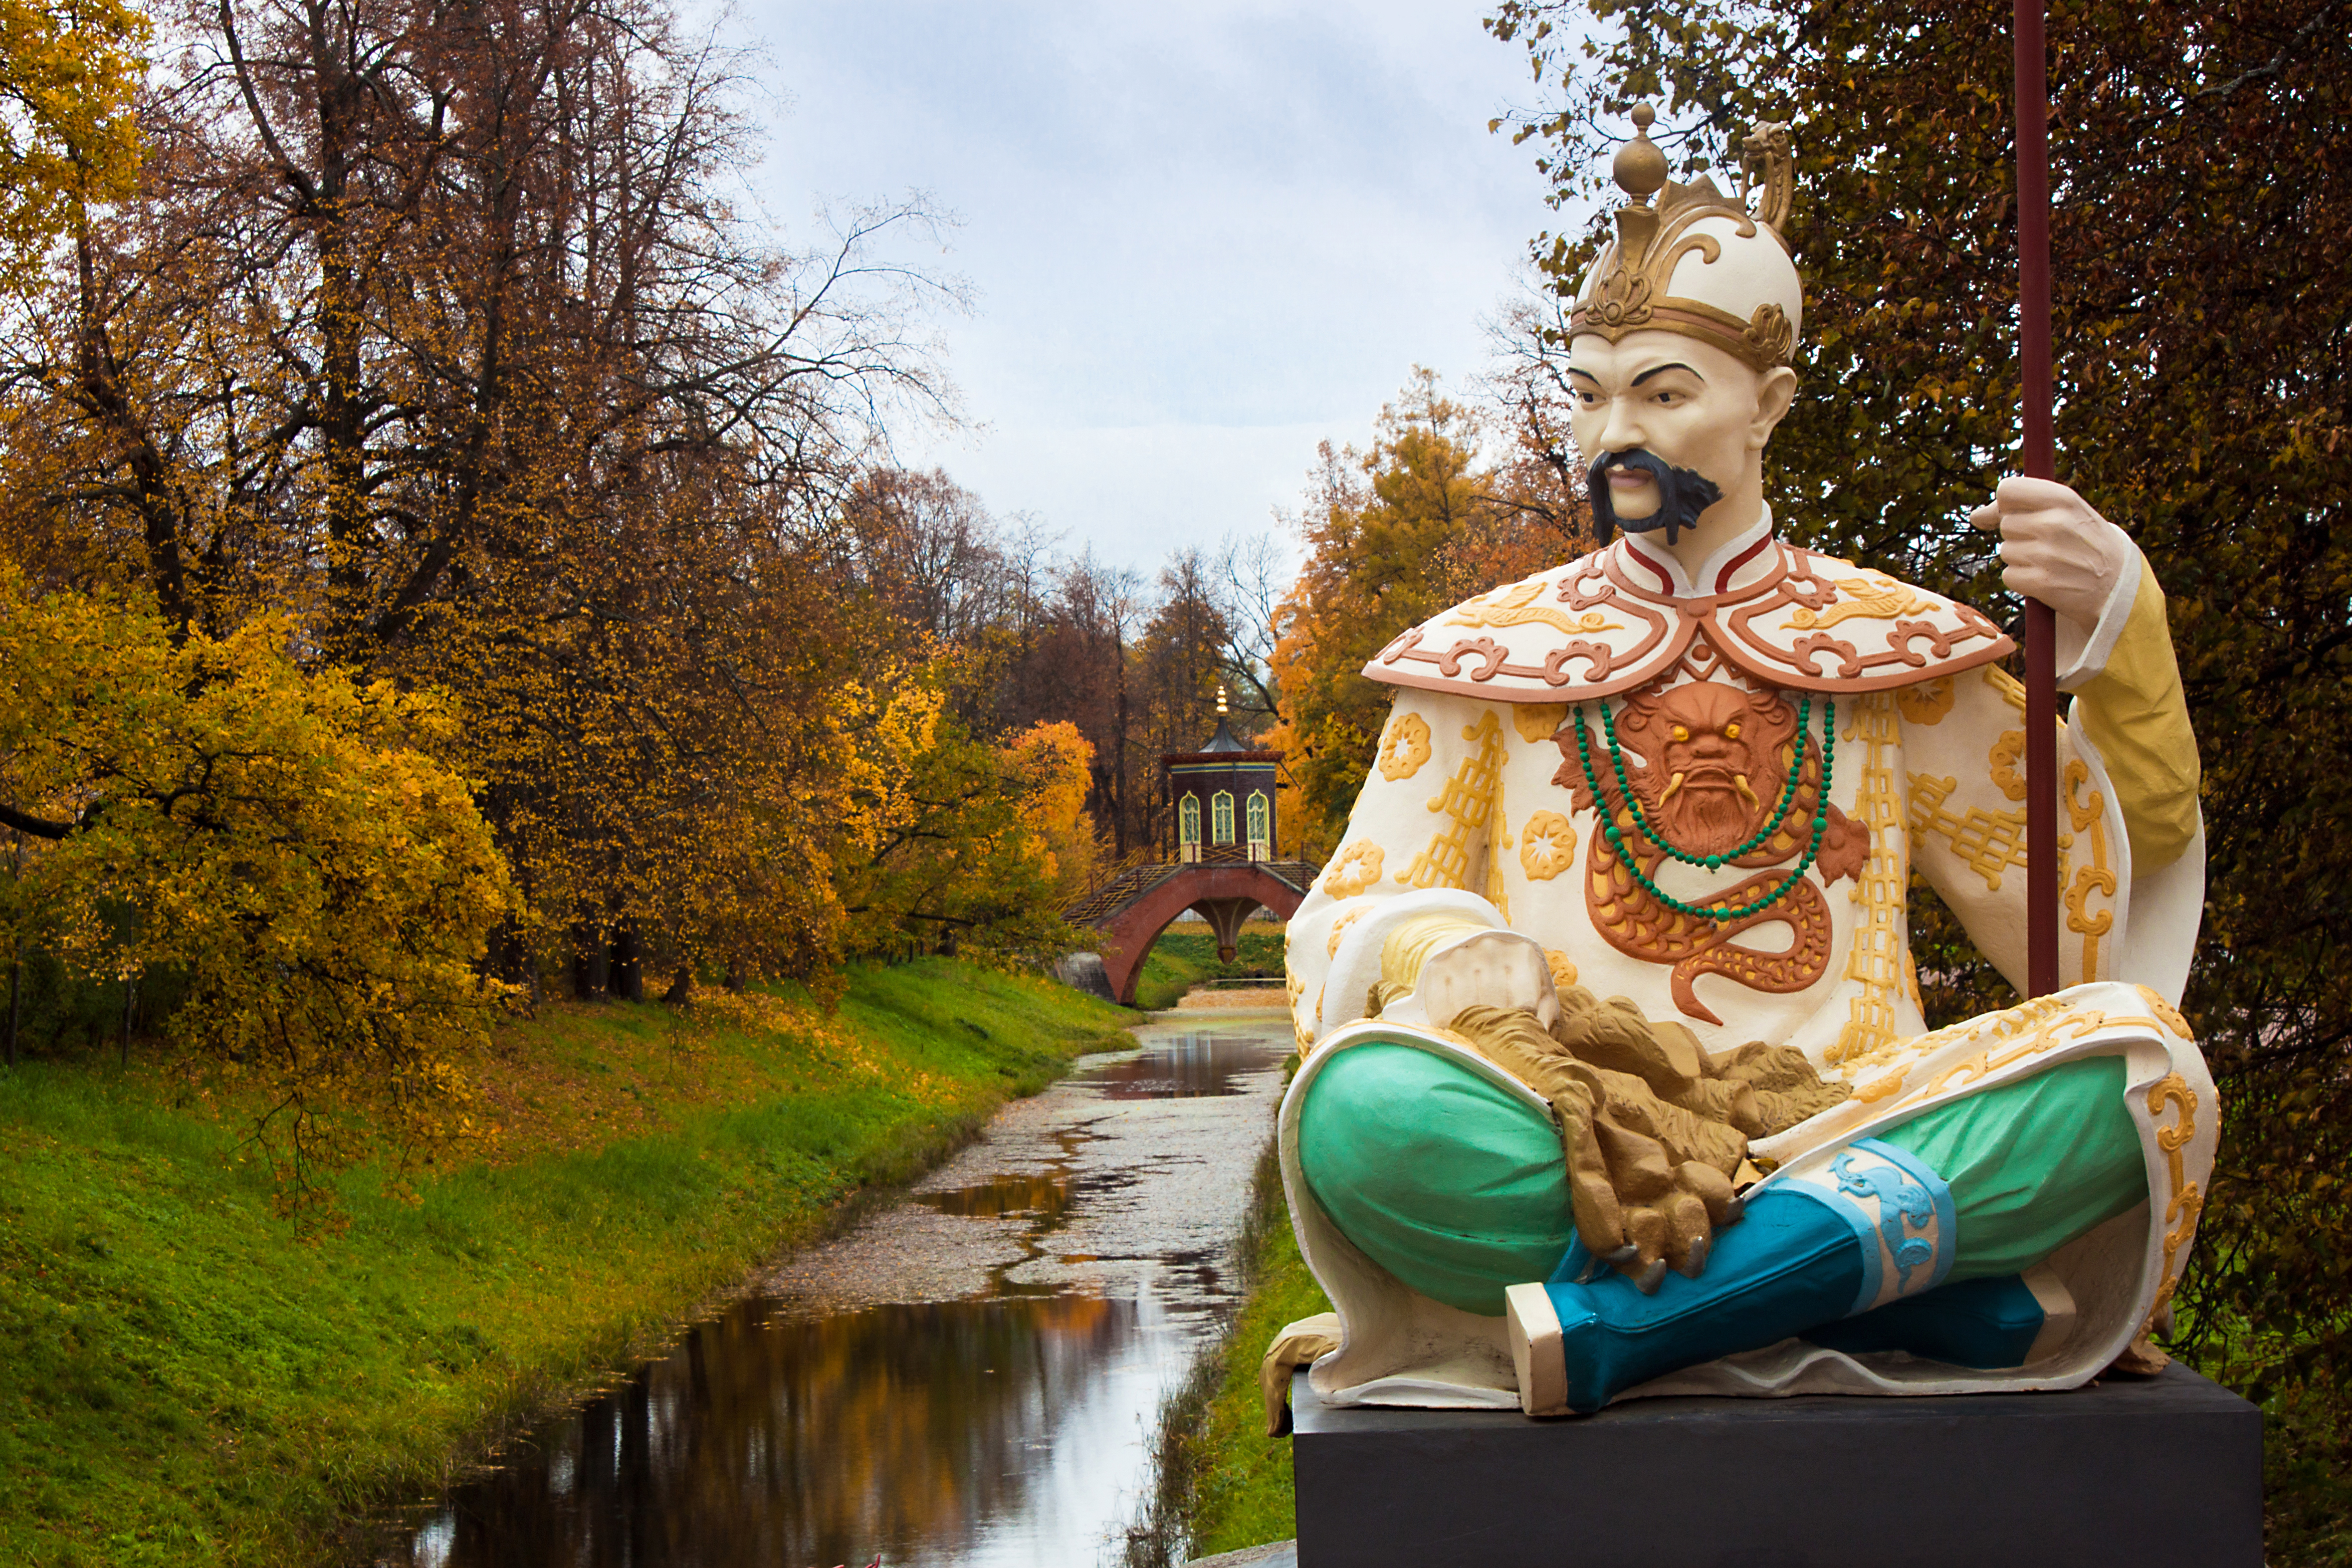 Statue on Big Chinese Bridge in Alexander`s park in Tsarskoye Selo (Pushkin)